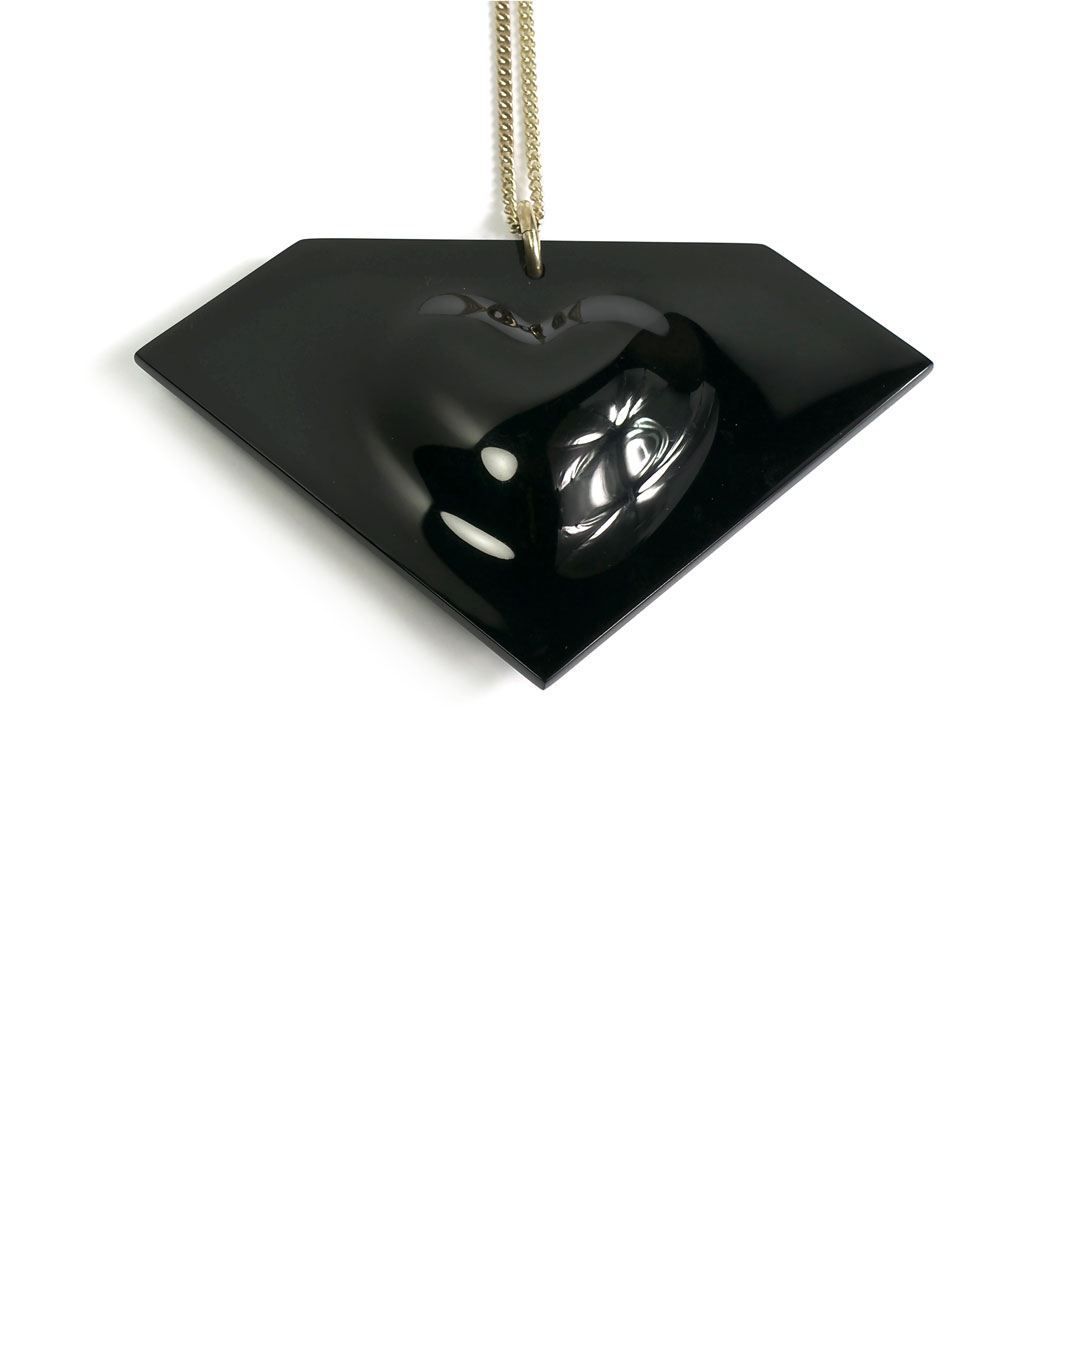 Florian Weichsberger, Diamond and Heart, 2009, pendant; plastic, silver, 110 x 70 x 20 mm, €1815